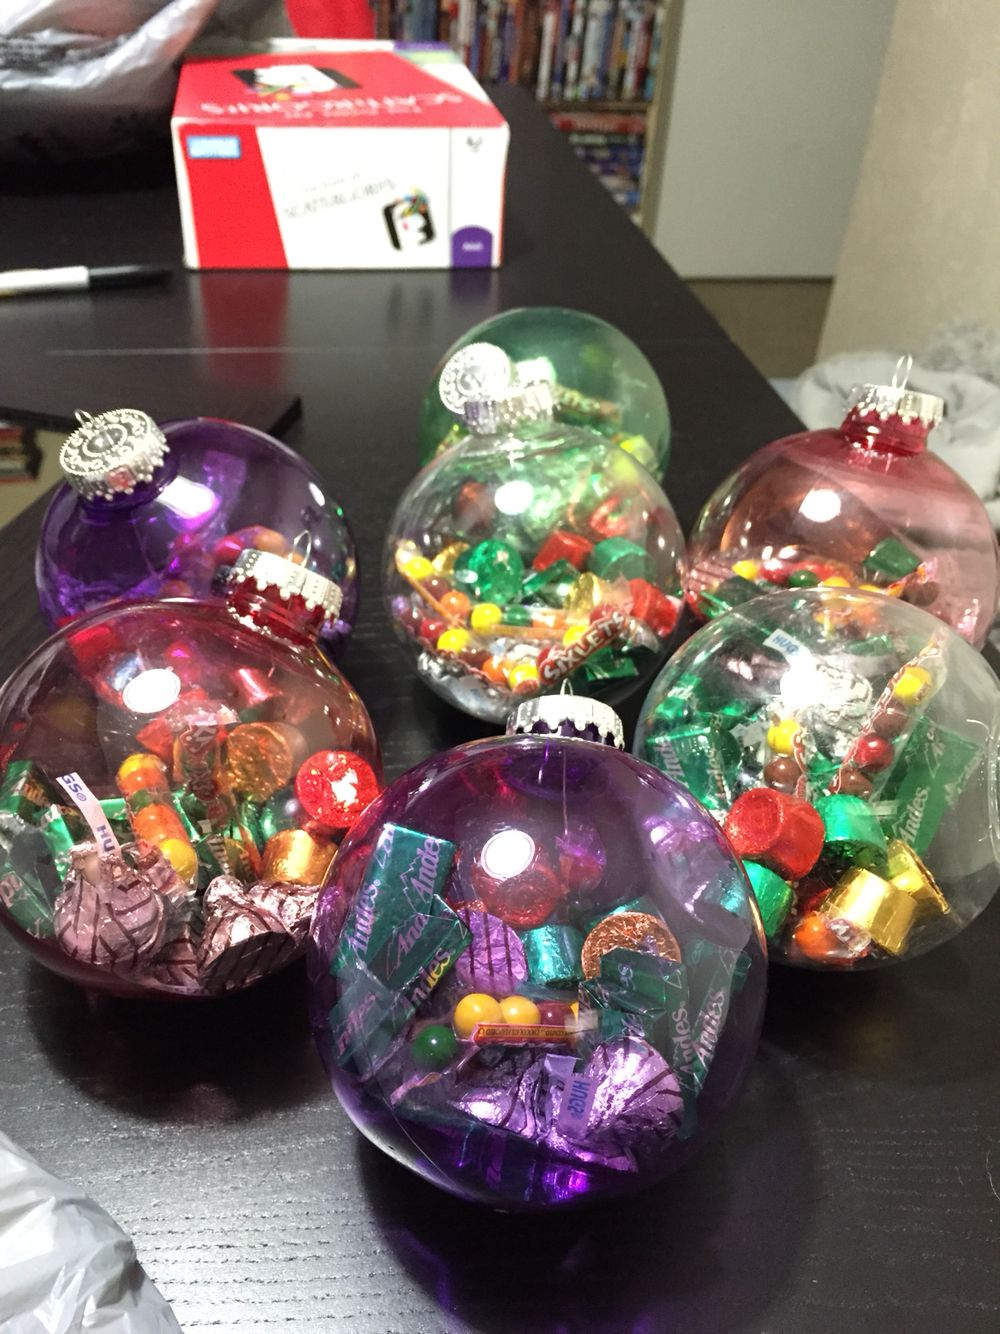 Really Cute Treat Bag Idea Great For Coworkers Teachers Friends Etc The Plastic Ornaments Cost 97 At And Then Just Add Small Candy